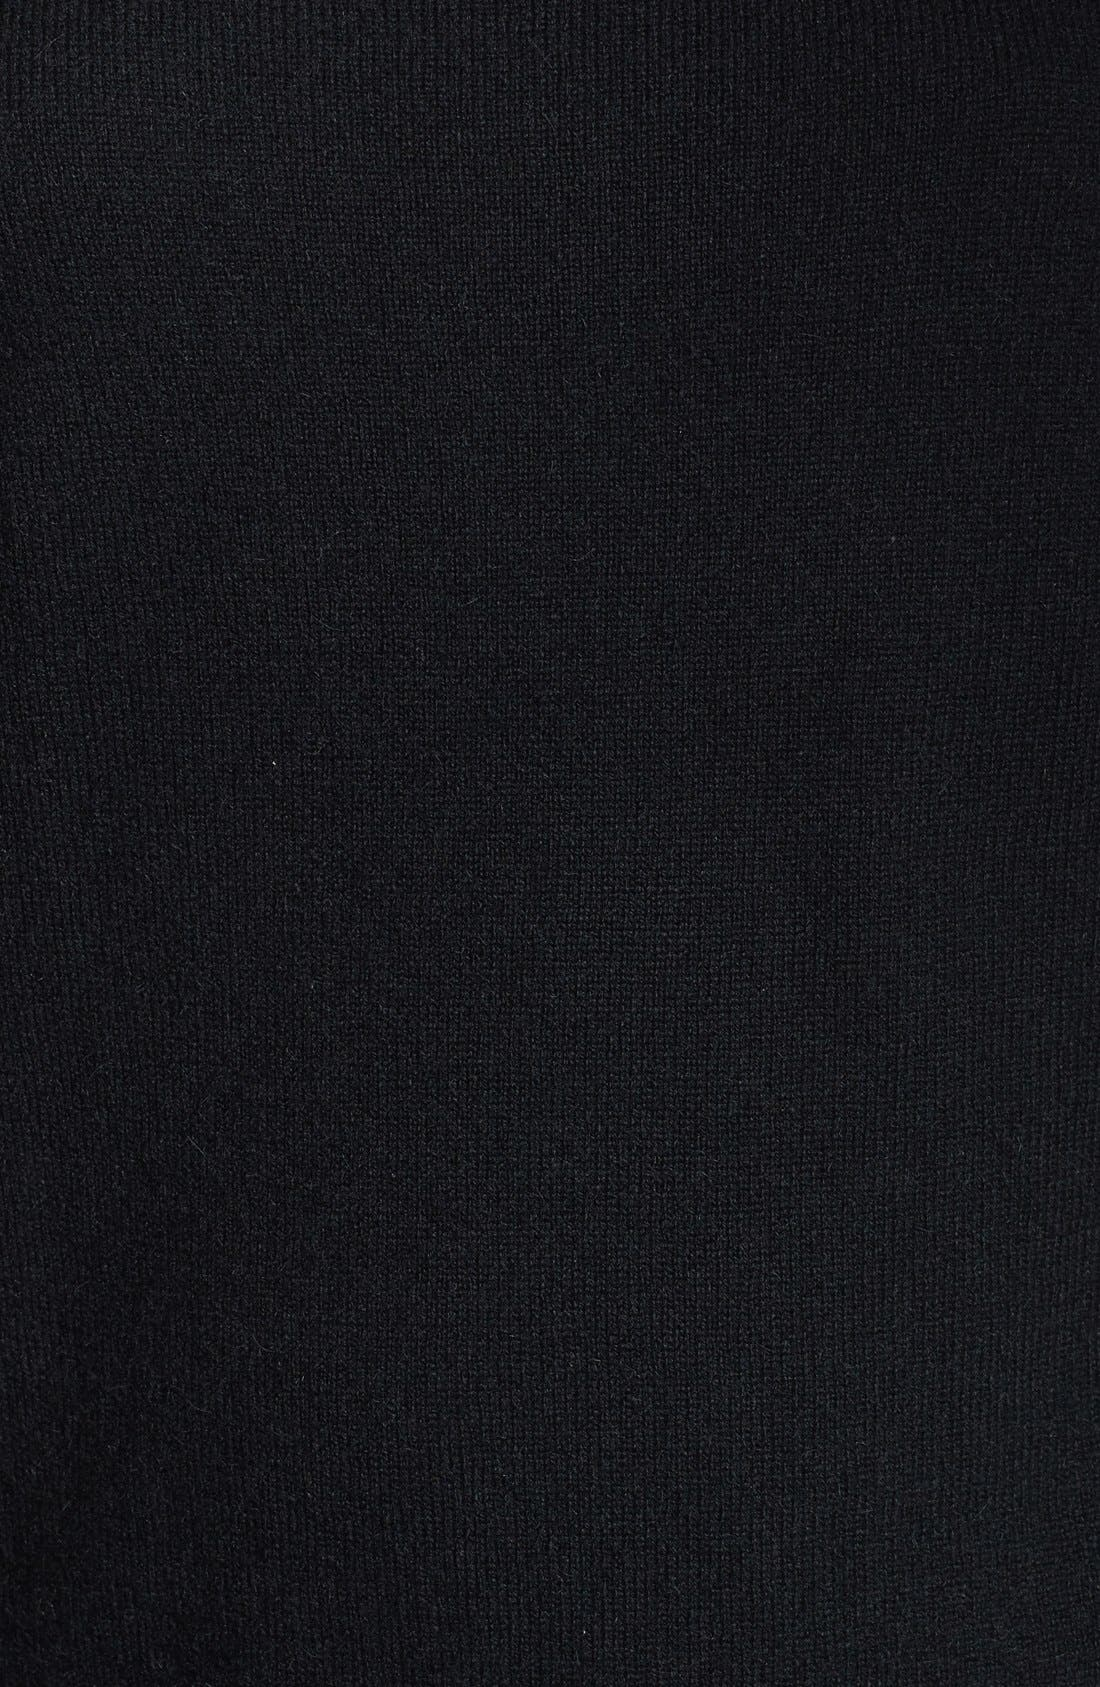 Solid Cashmere Sweater,                             Alternate thumbnail 2, color,                             001